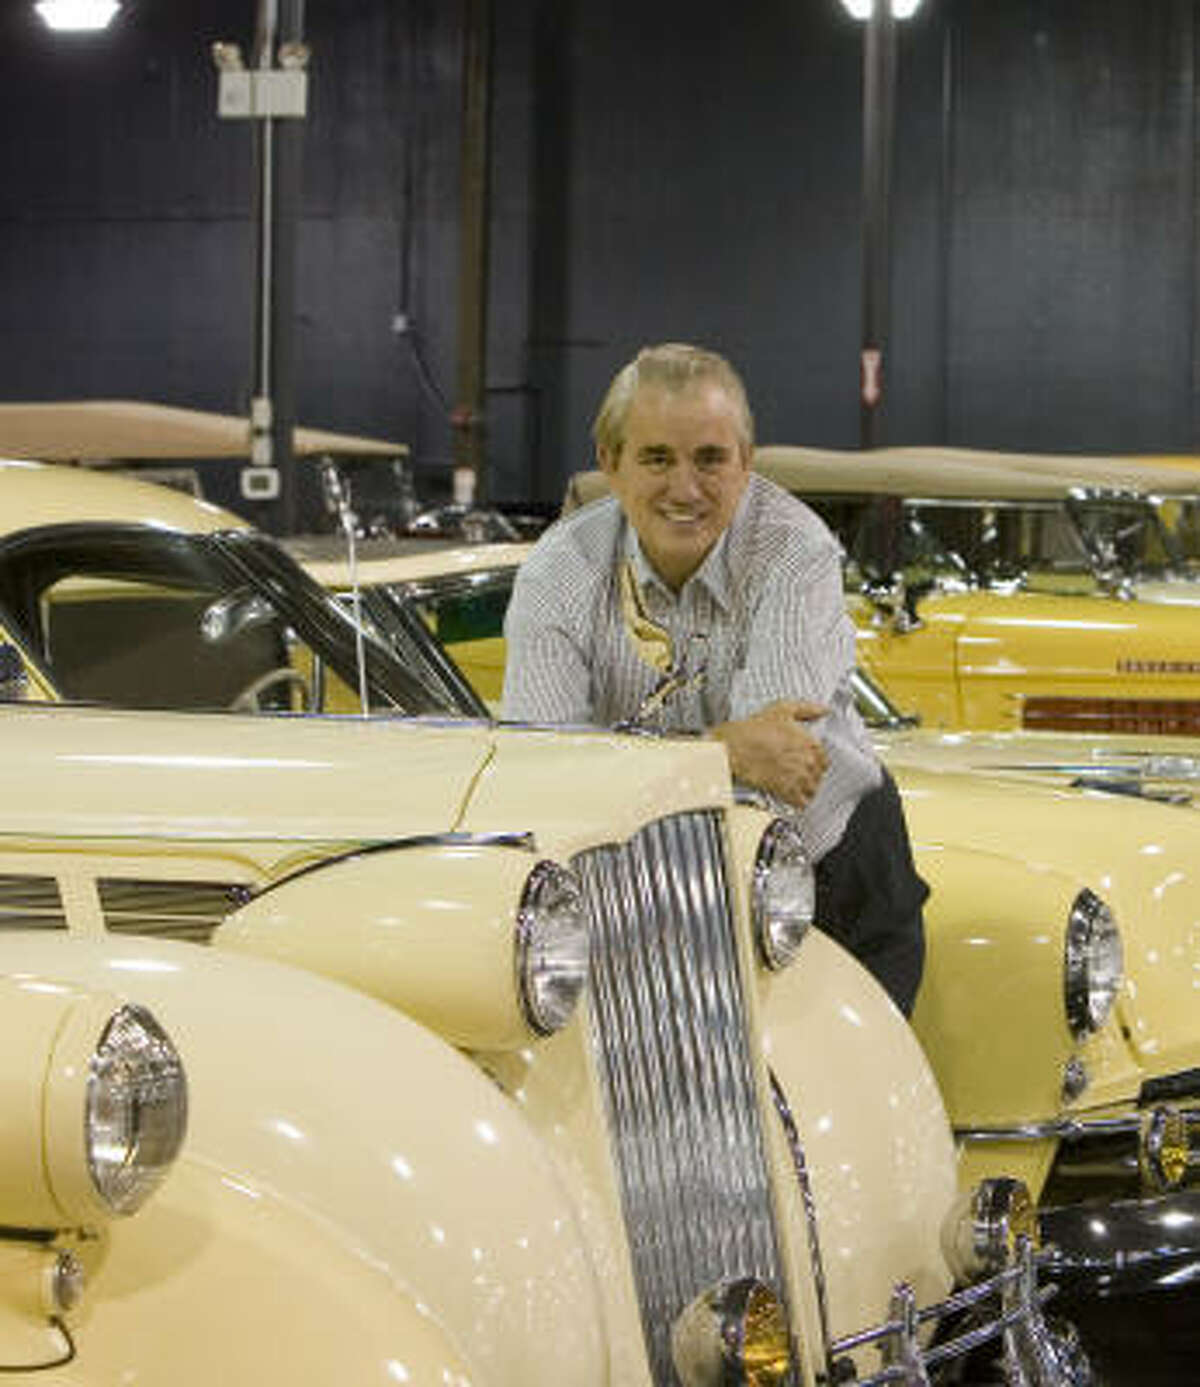 John O'Quinn leans on a 1938 Packard Super-Eight in May 2006. He started his collection in 2003, and it numbered about 800 classic cars at the time of his death in 2009.